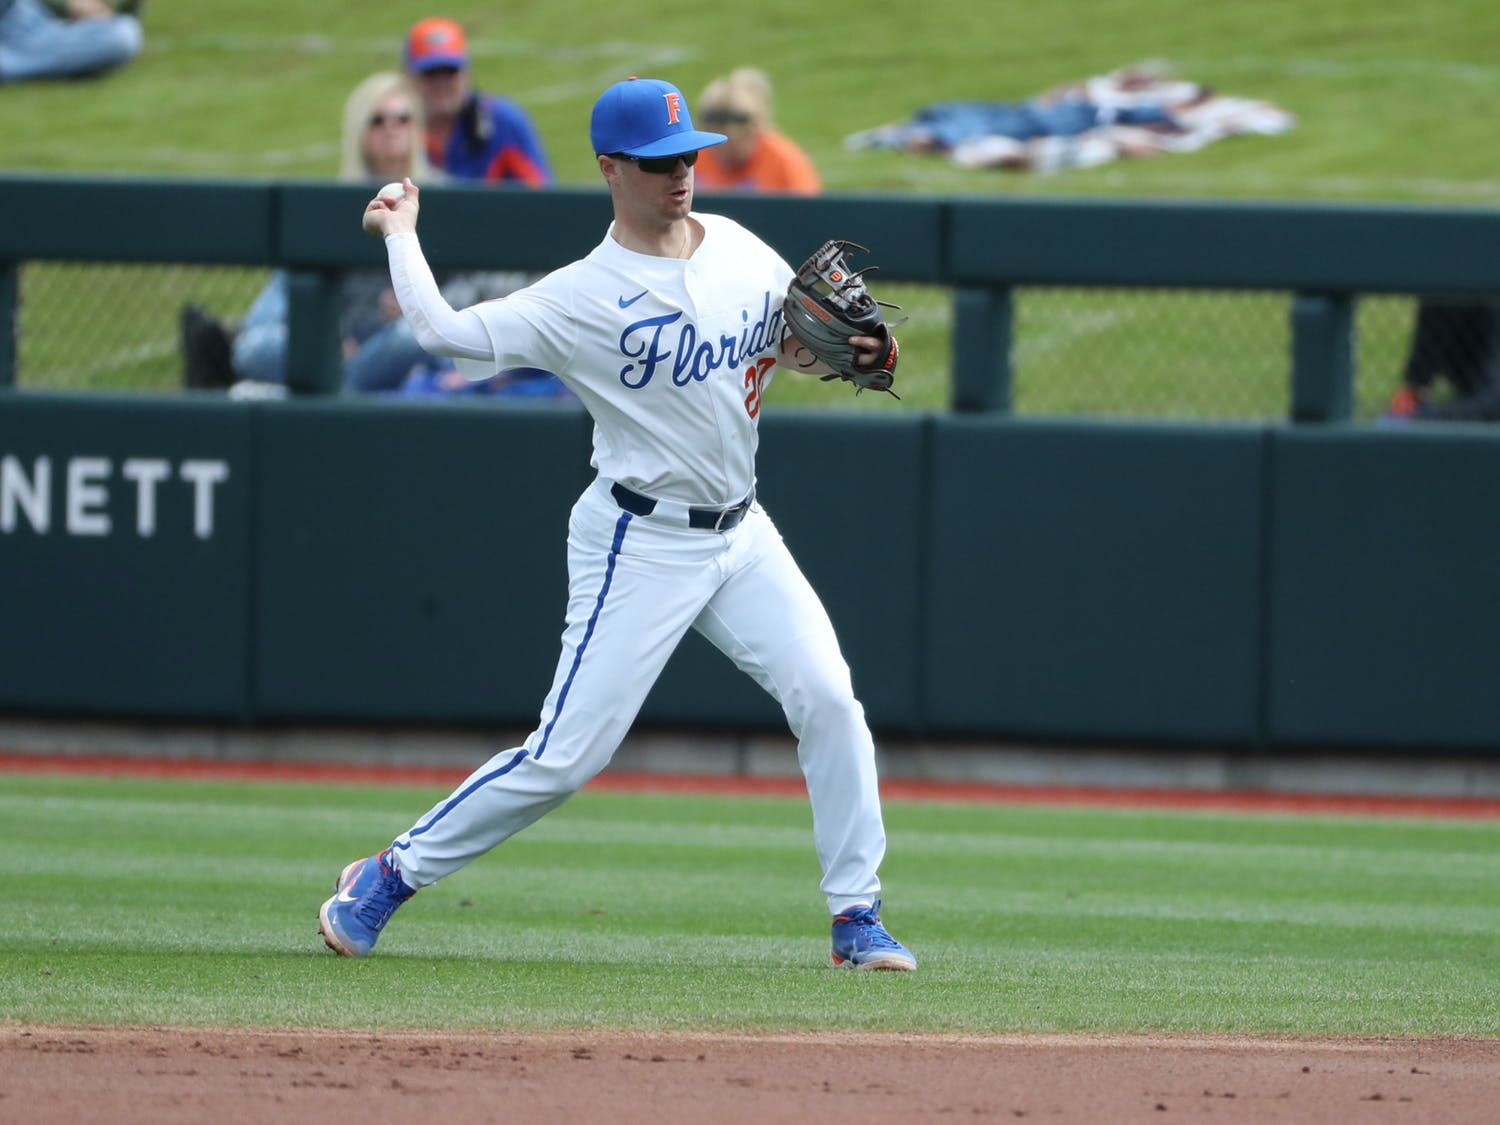 The Gators play their fifth game in six days Wednesday. Photo from UF-UM game Feb. 21. Courtesy of the SEC Media Portal.